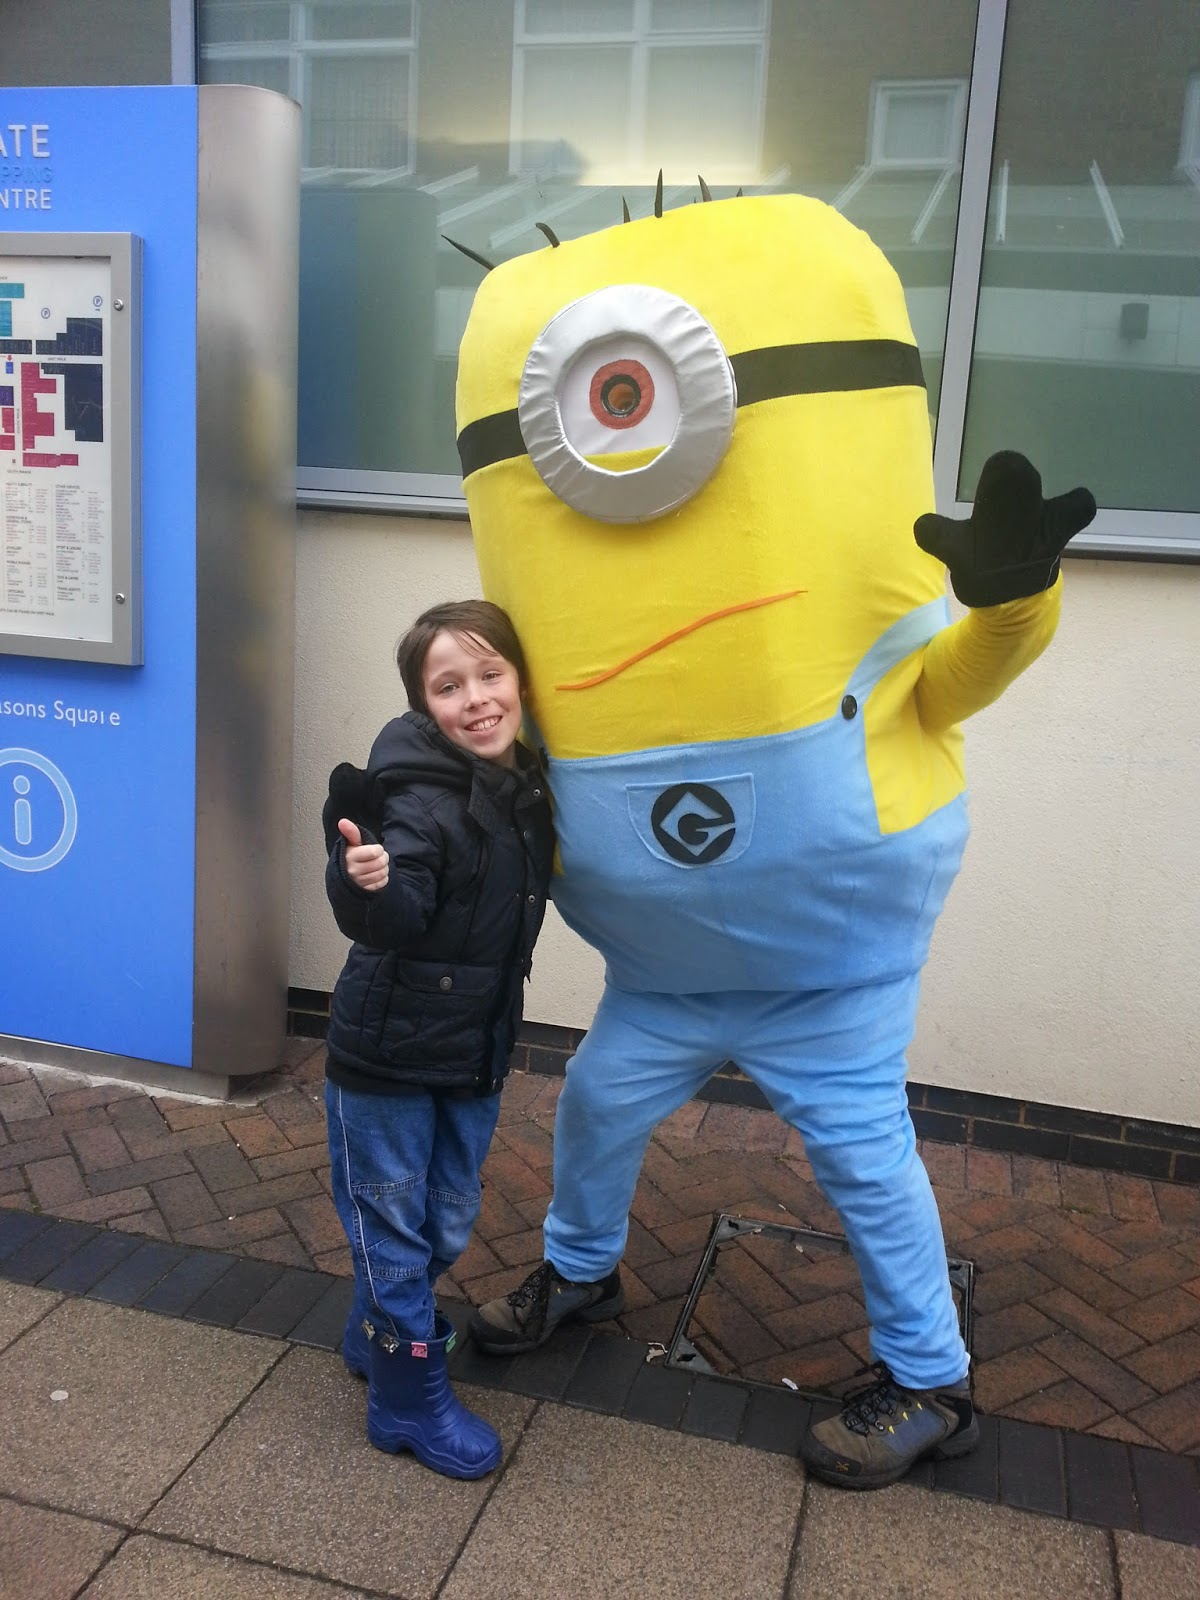 A boy and a minion